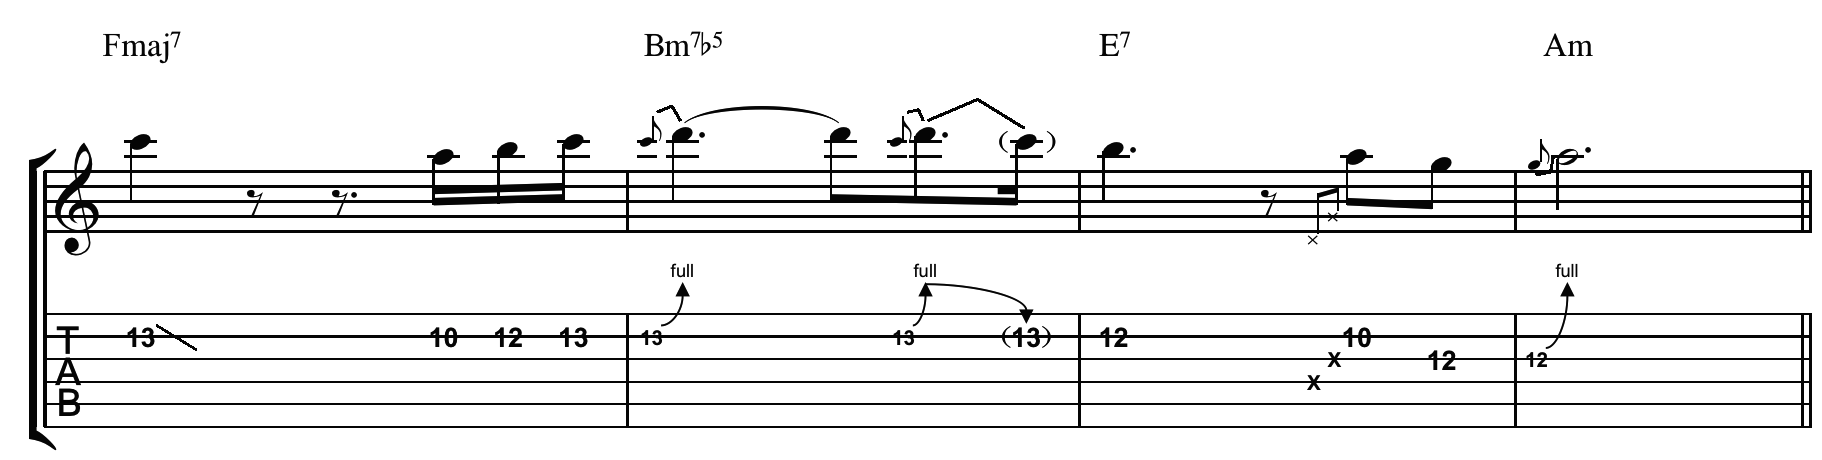 still-got-the-blues-guitar-tab_2.png